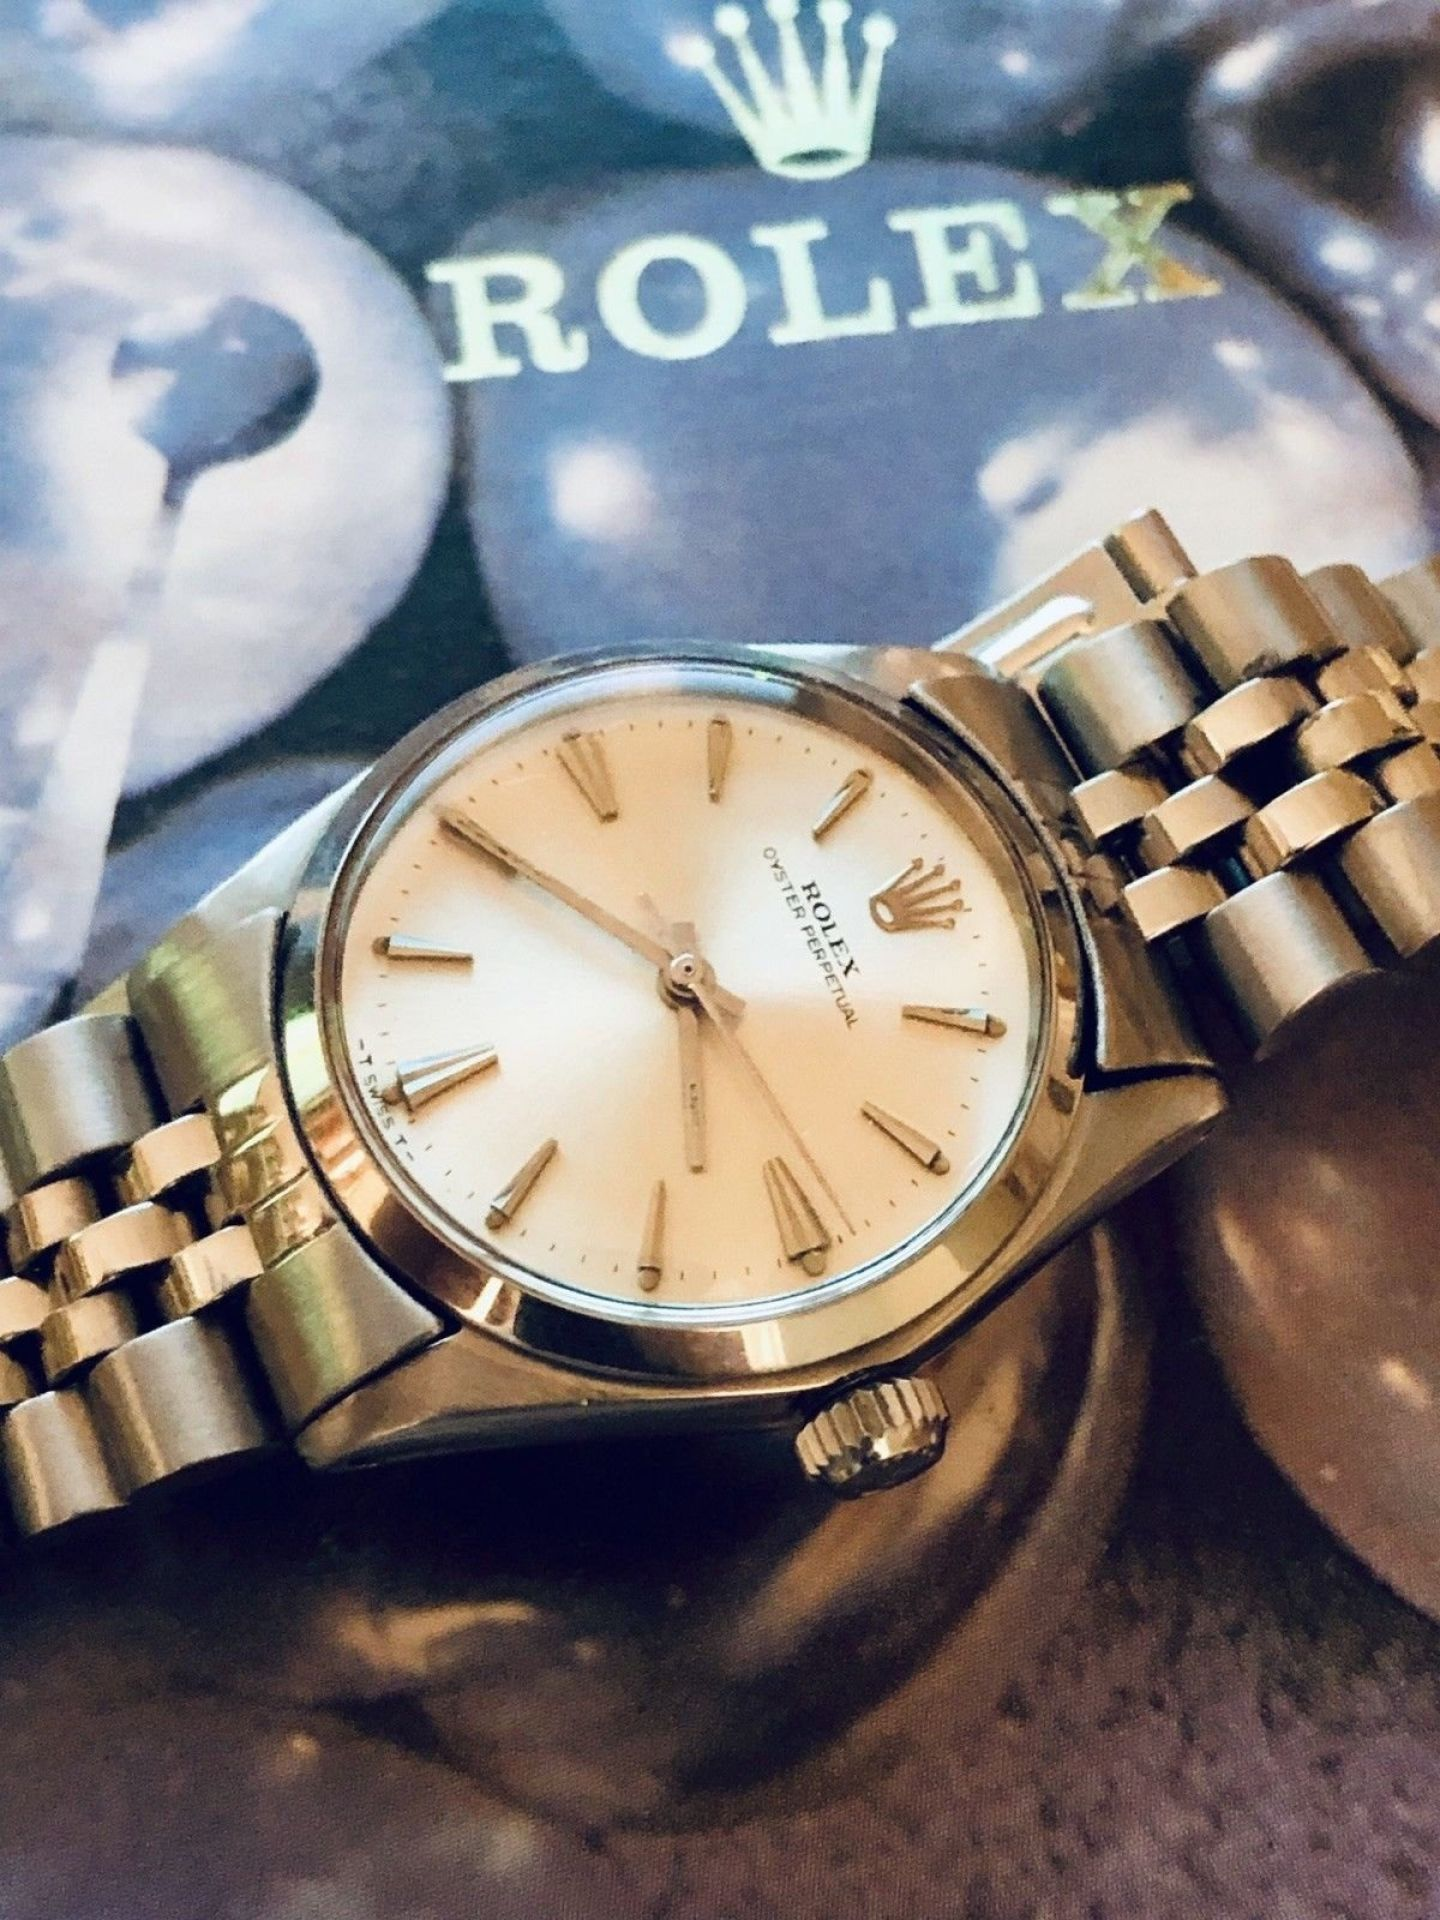 ROLEX OYSTER PERPETUAL REF 6549 1960-69 AUTOMATIC 1160 MIDSIZE 31MM